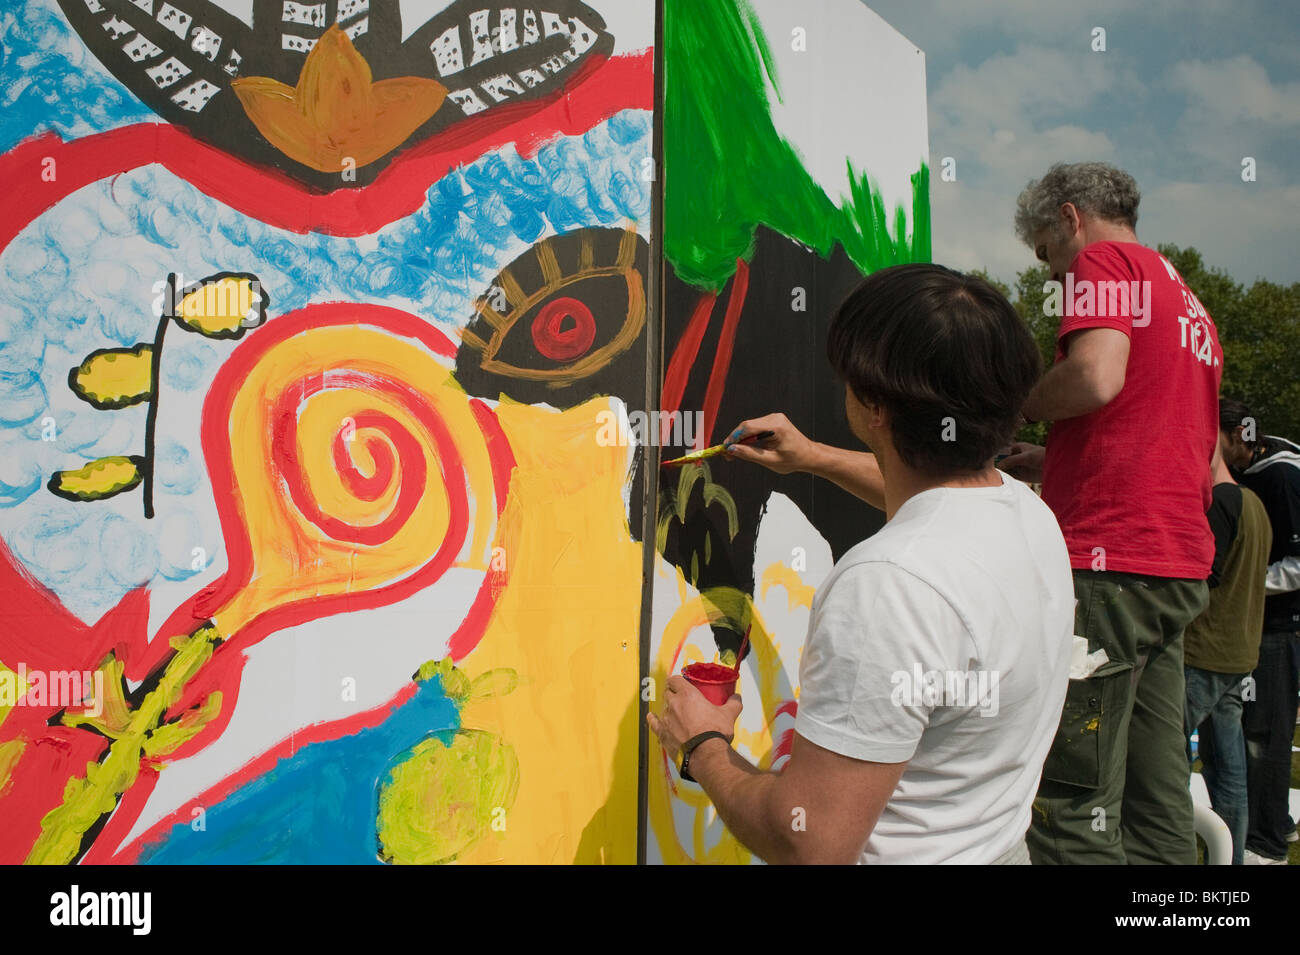 Celebration of World 'Fair Trade' Day, with Man Painting Wall, Mural, in La Villette Park, - Stock Image